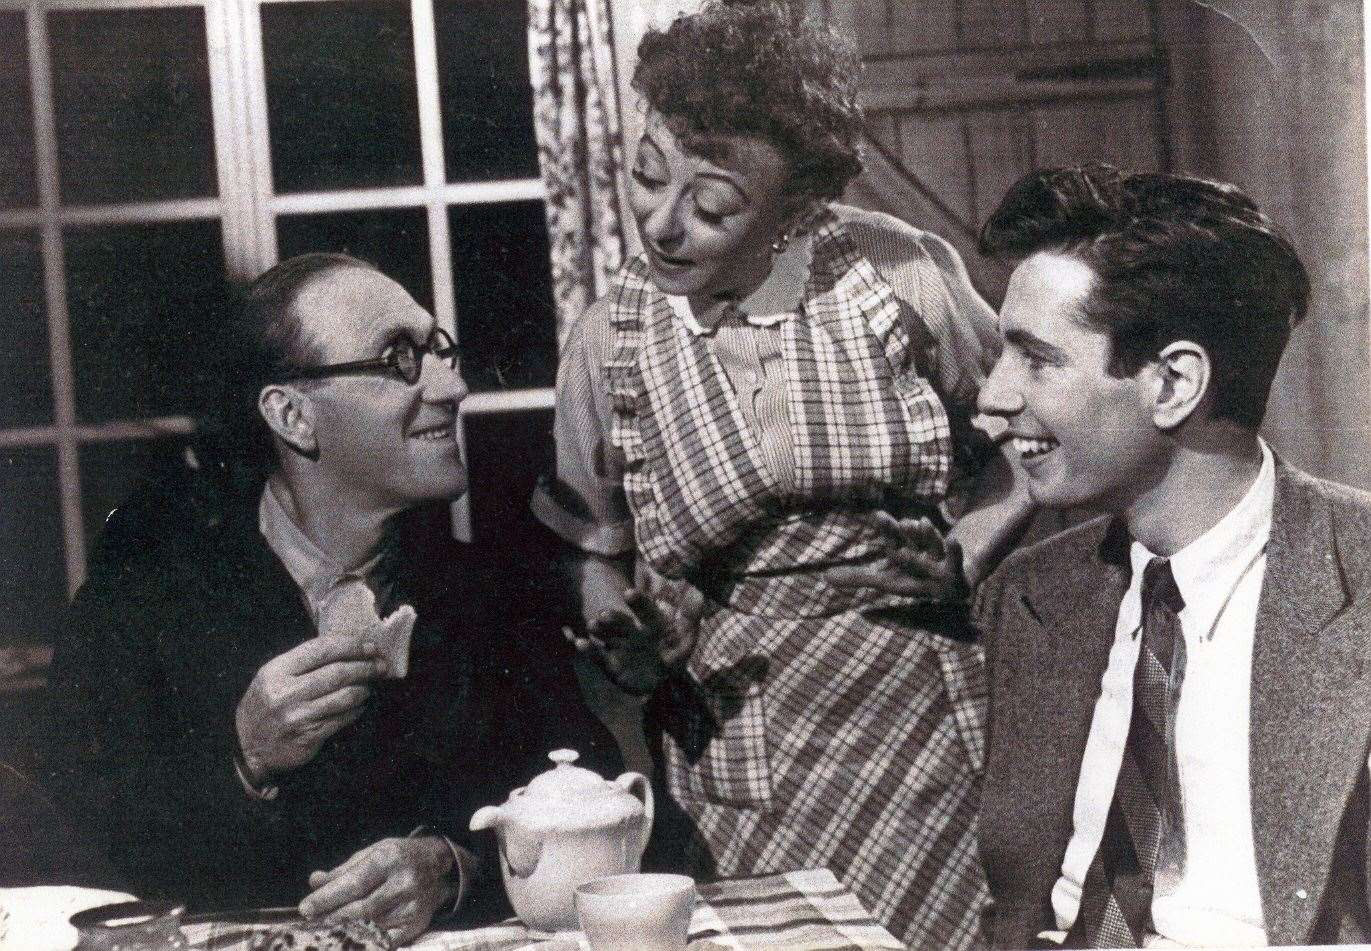 Wartime favourite Arthur Askey, left, seen here with Thora Hird and Ian Gardiner